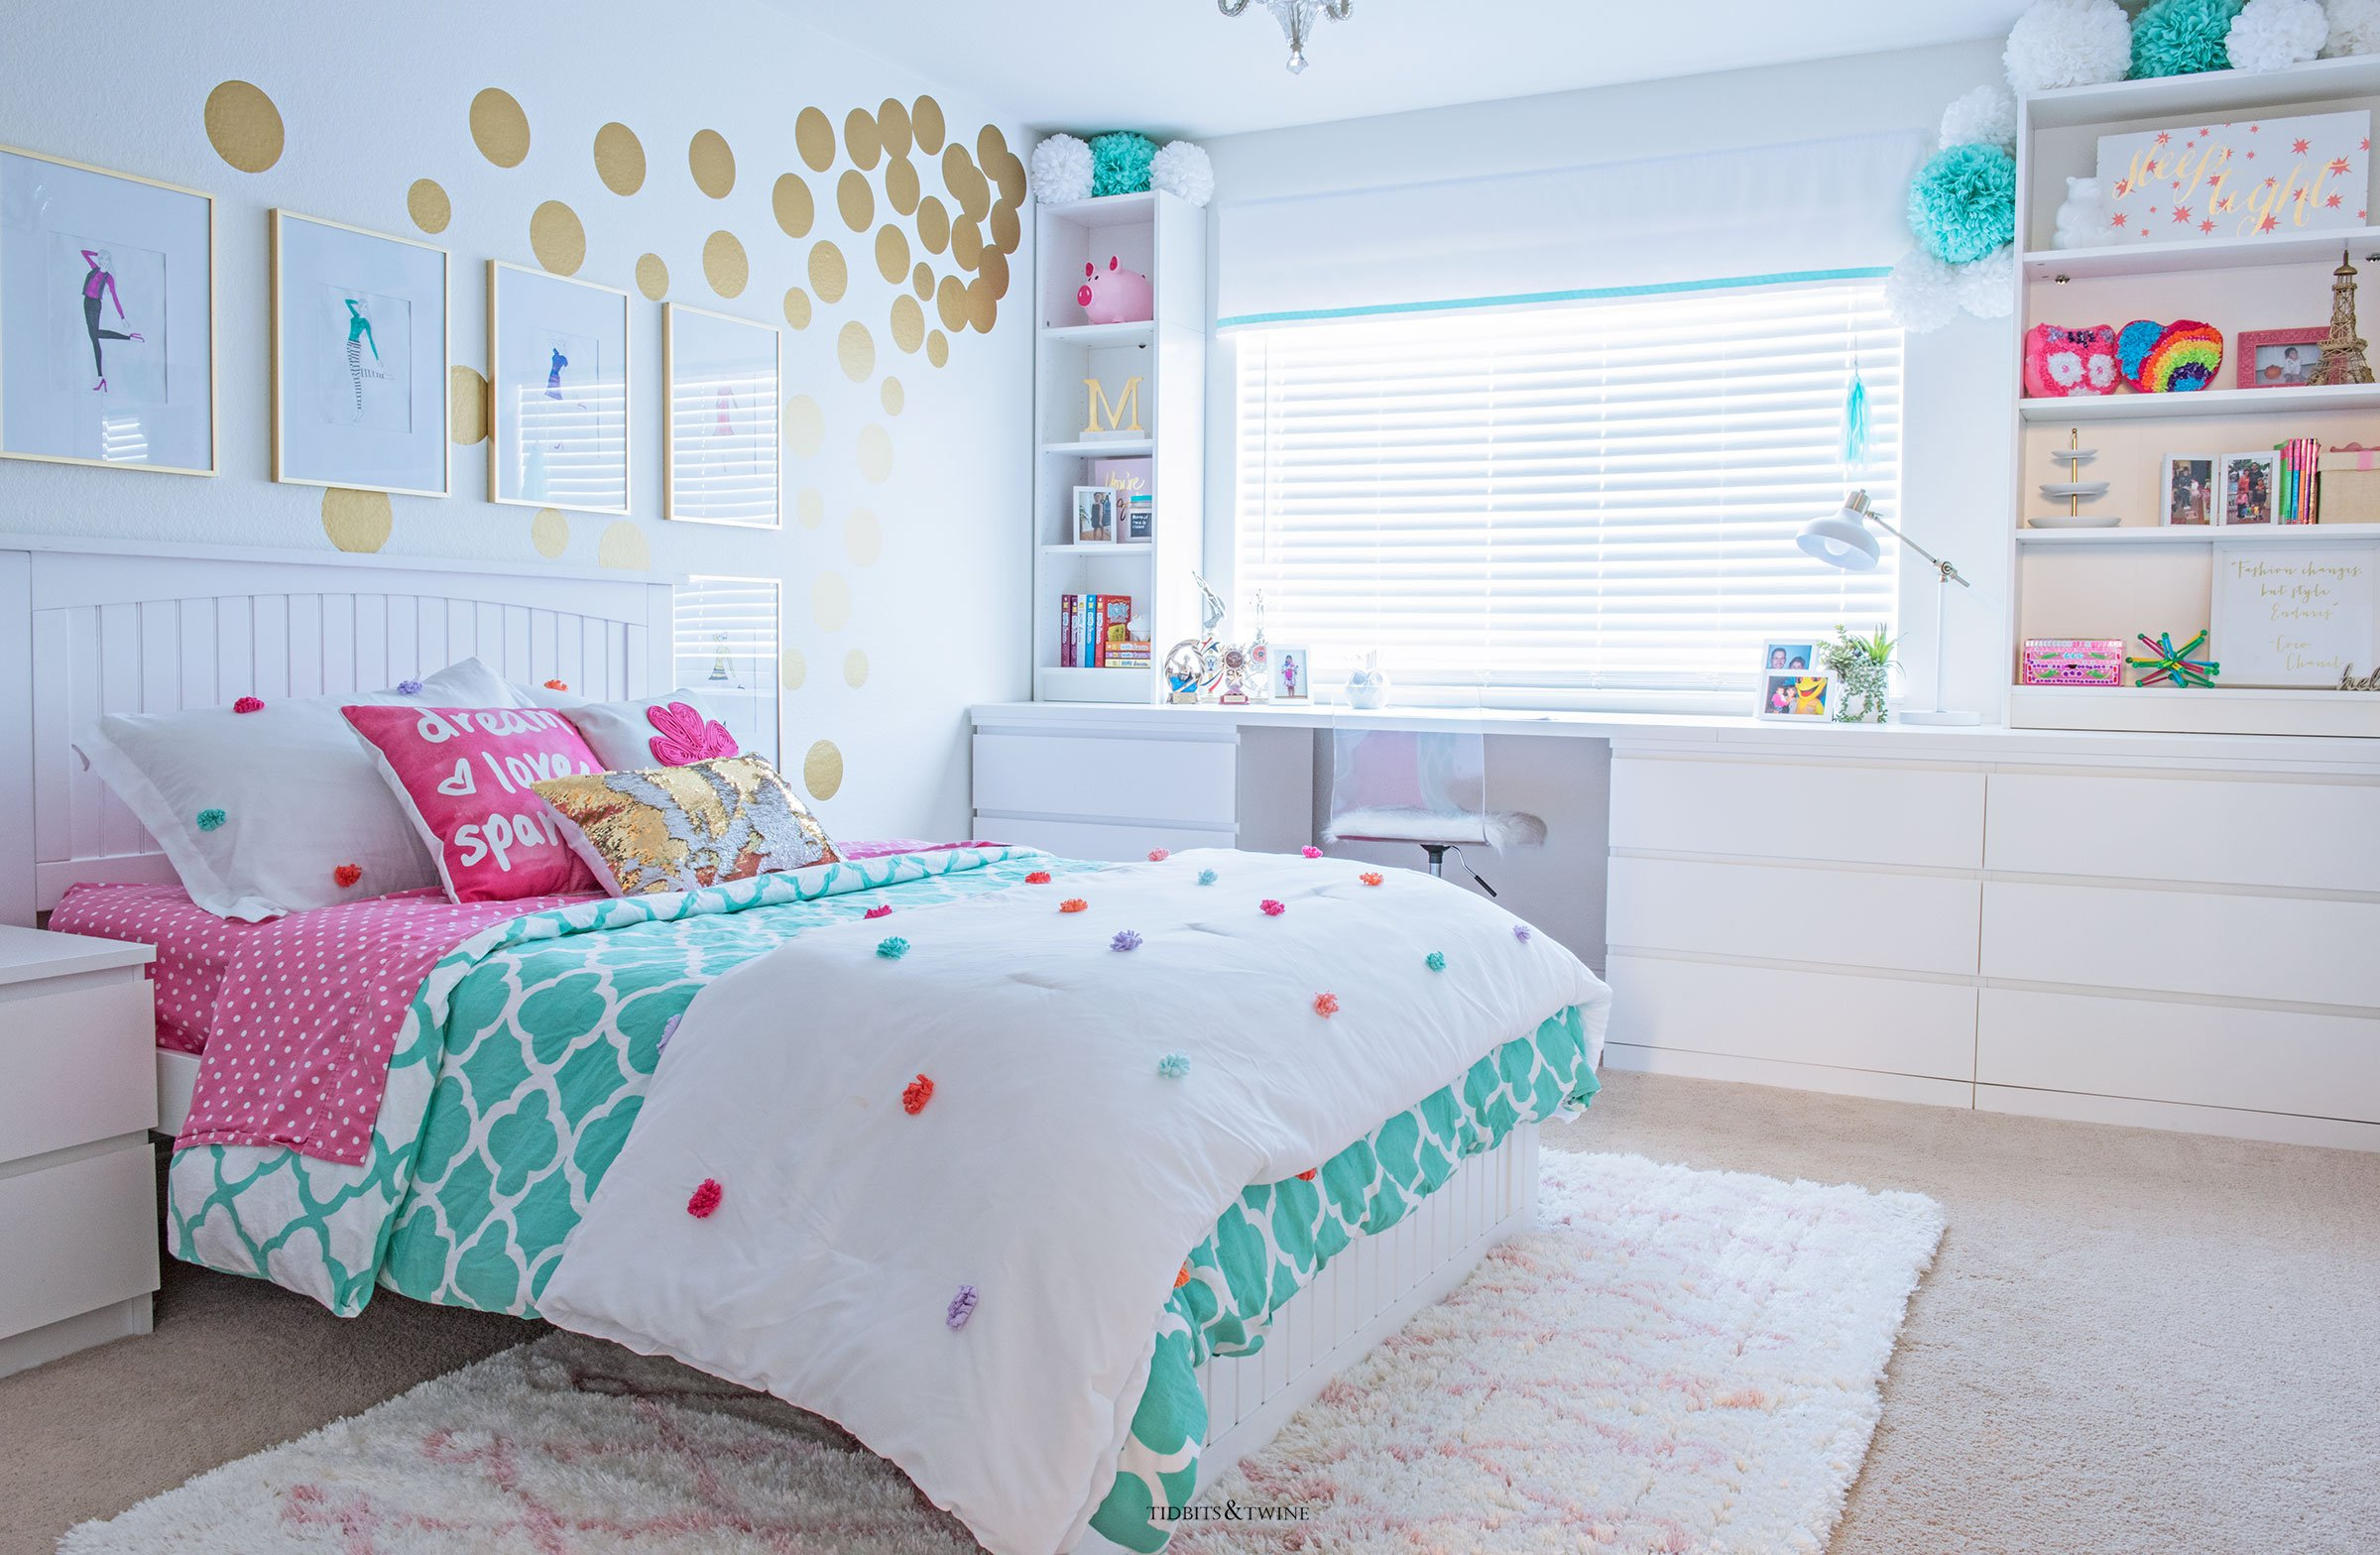 Tween girl 39 s bedroom makeover reveal tidbits twine - Teen girl room decor ...